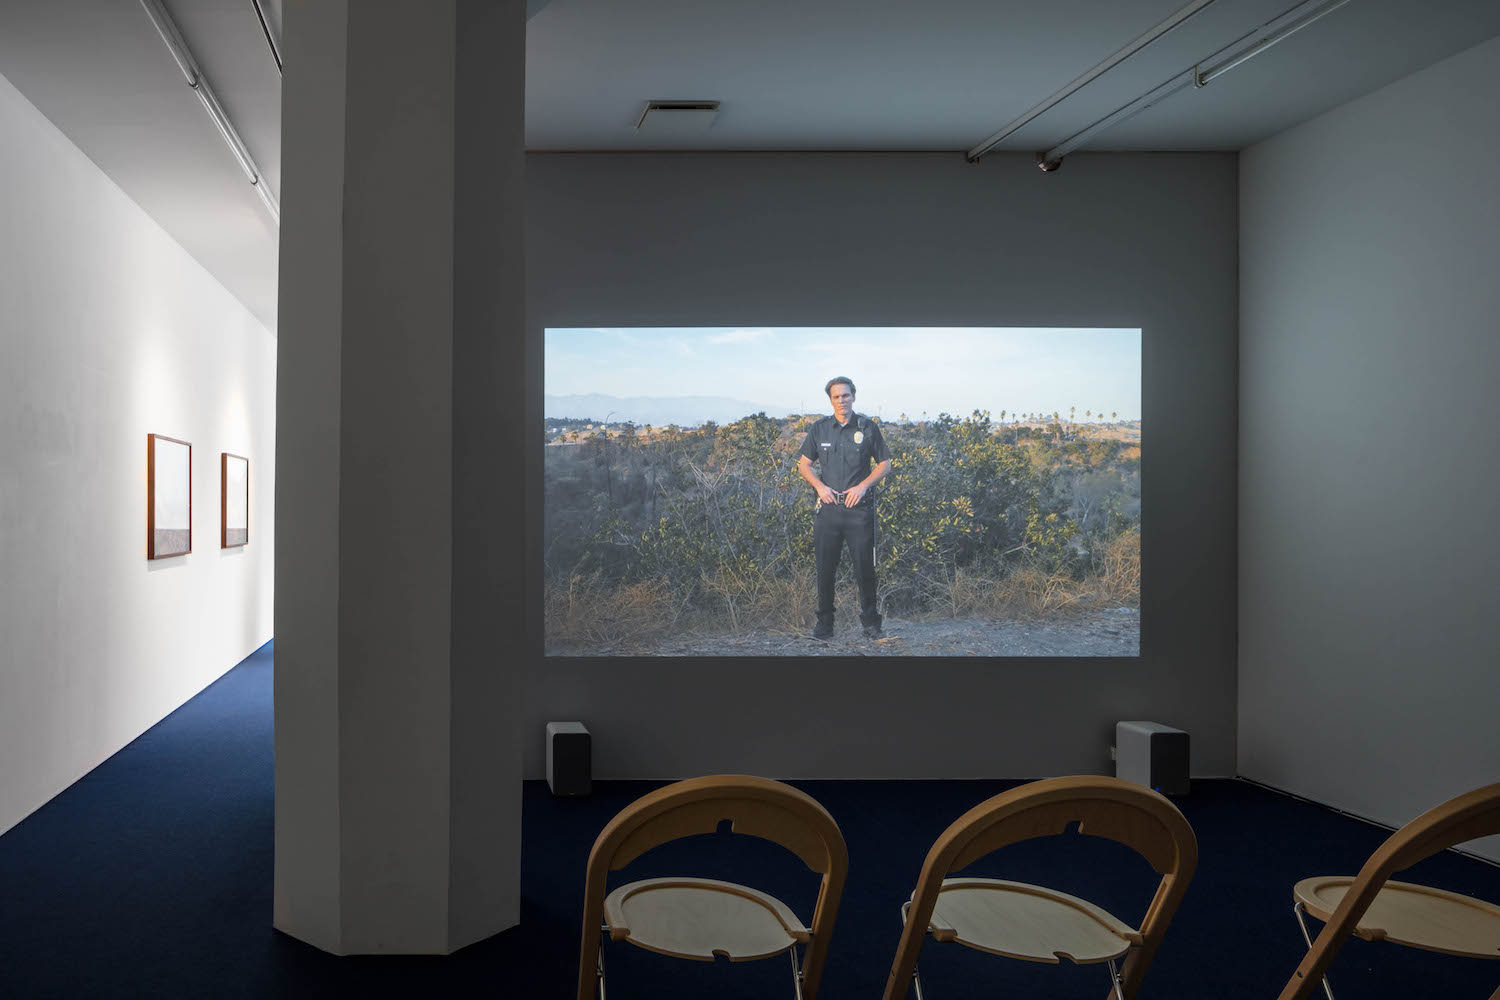 Installation view: Tova Mozard, Cops/Actors, 2017, photo: Jean-Baptiste Beranger